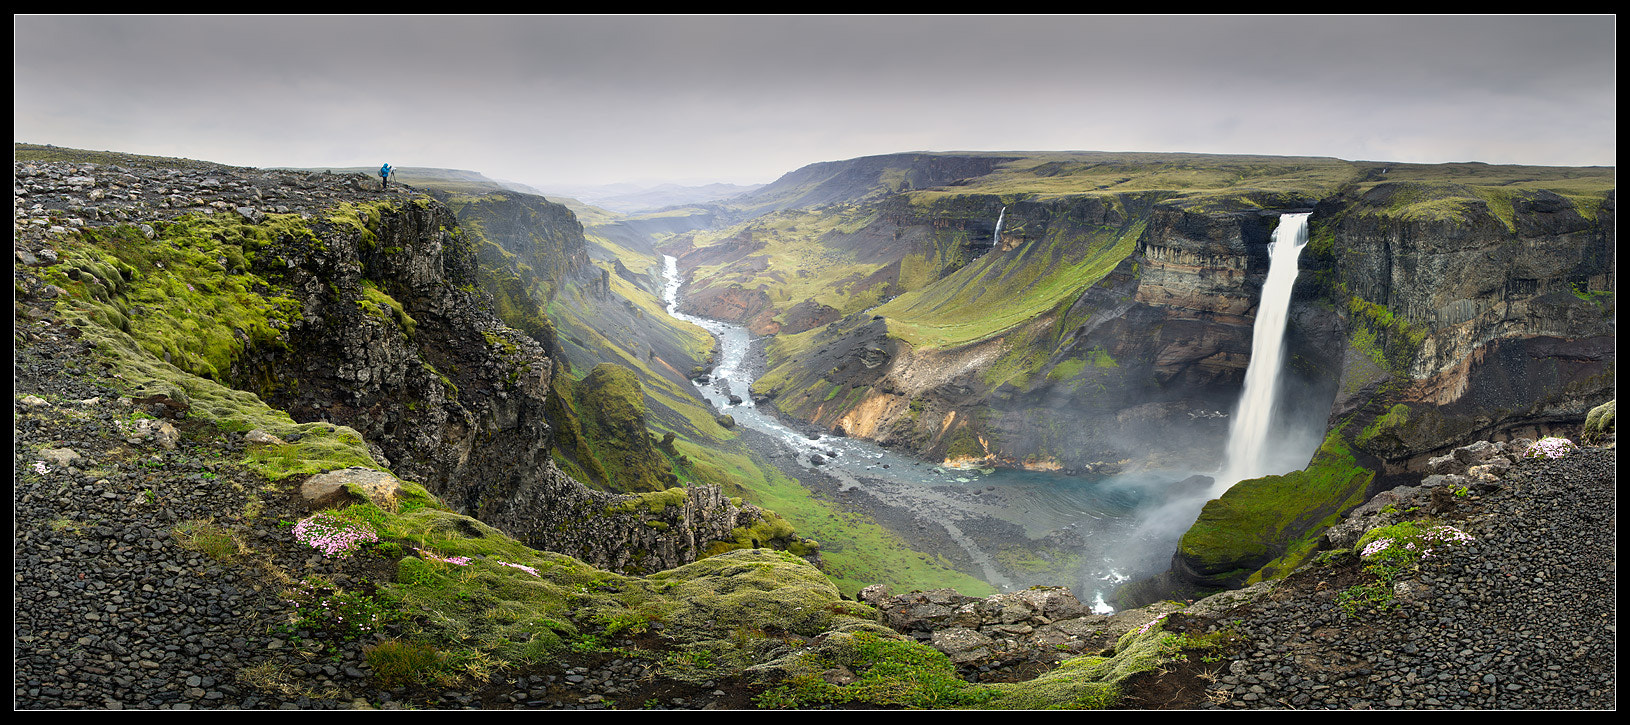 Photograph Haifoss by Victoria Rogotneva on 500px